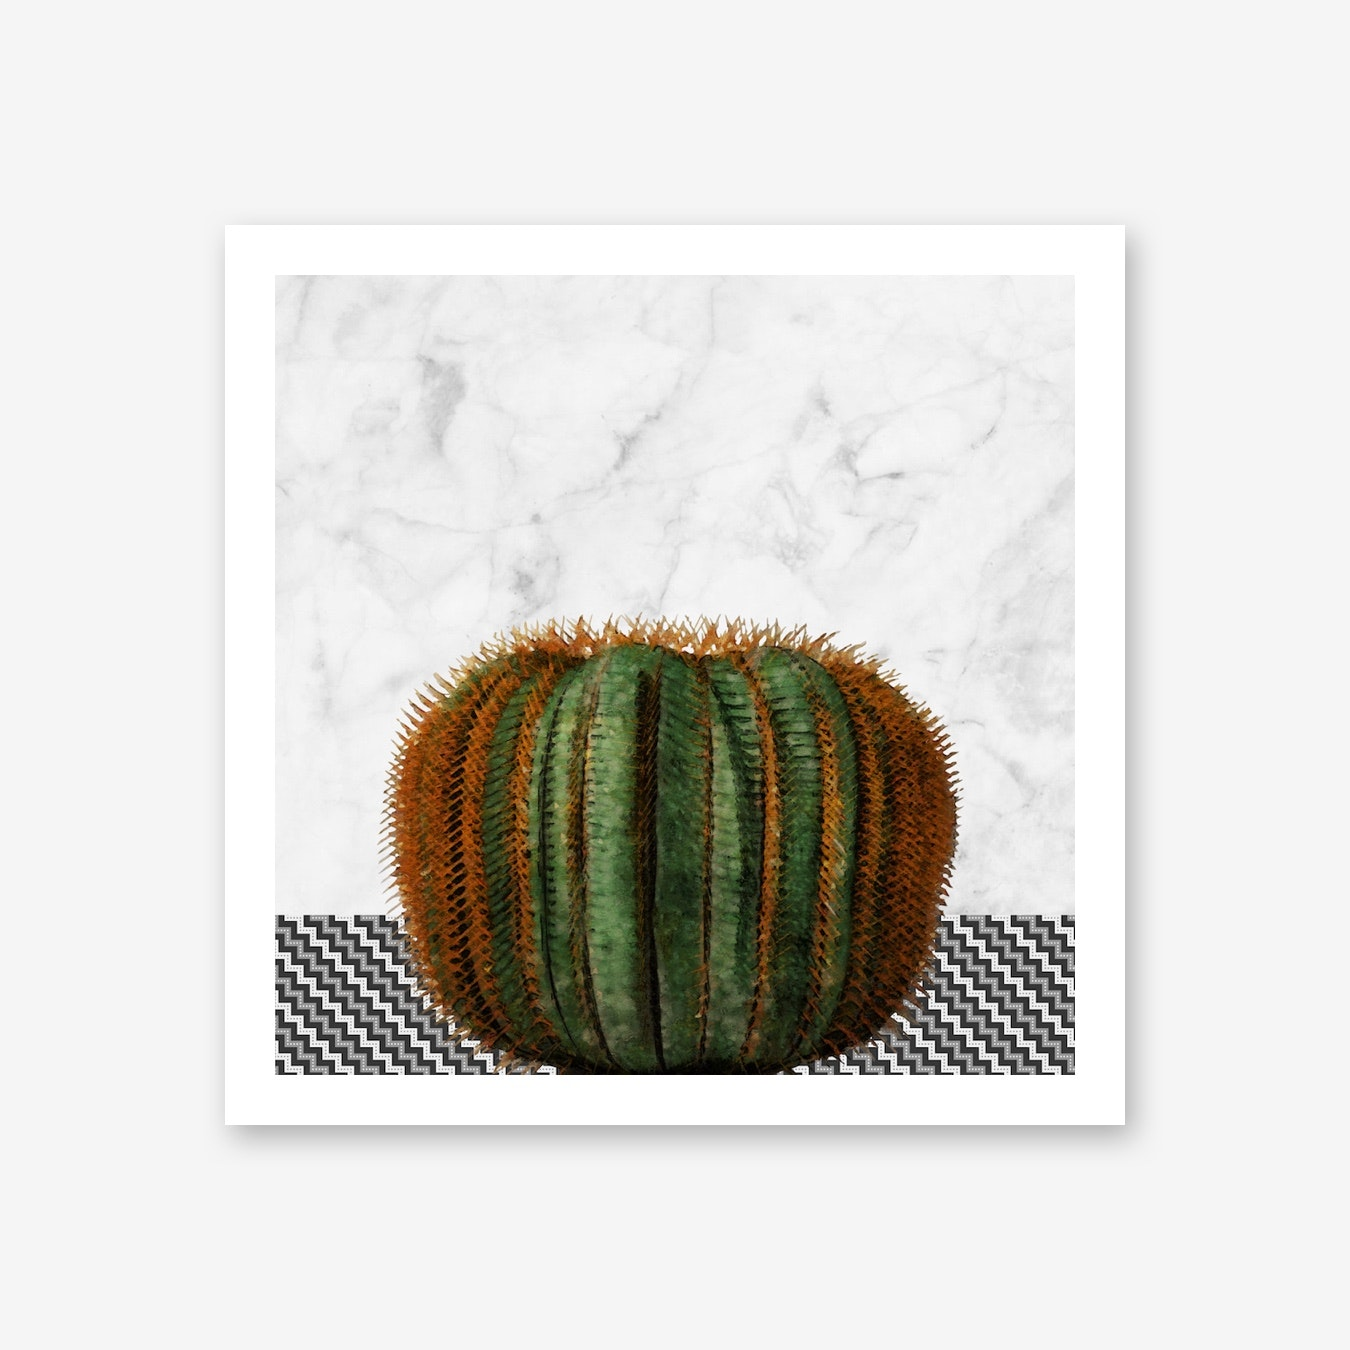 Cactus Ball on White Marble and Zigzag Wall Art Print on leopard house plant, bamboo house plant, king house plant, red house plant, spiral house plant, succulent plant identification house plant, peacock house plant, arrow house plant, purple house plant, mosaic house plant, green house plant, zipper house plant, butterfly house plant, striped house plant, orange house plant, ribbon house plant, croton house plant, angel house plant, flower house plant, polka dot house plant,